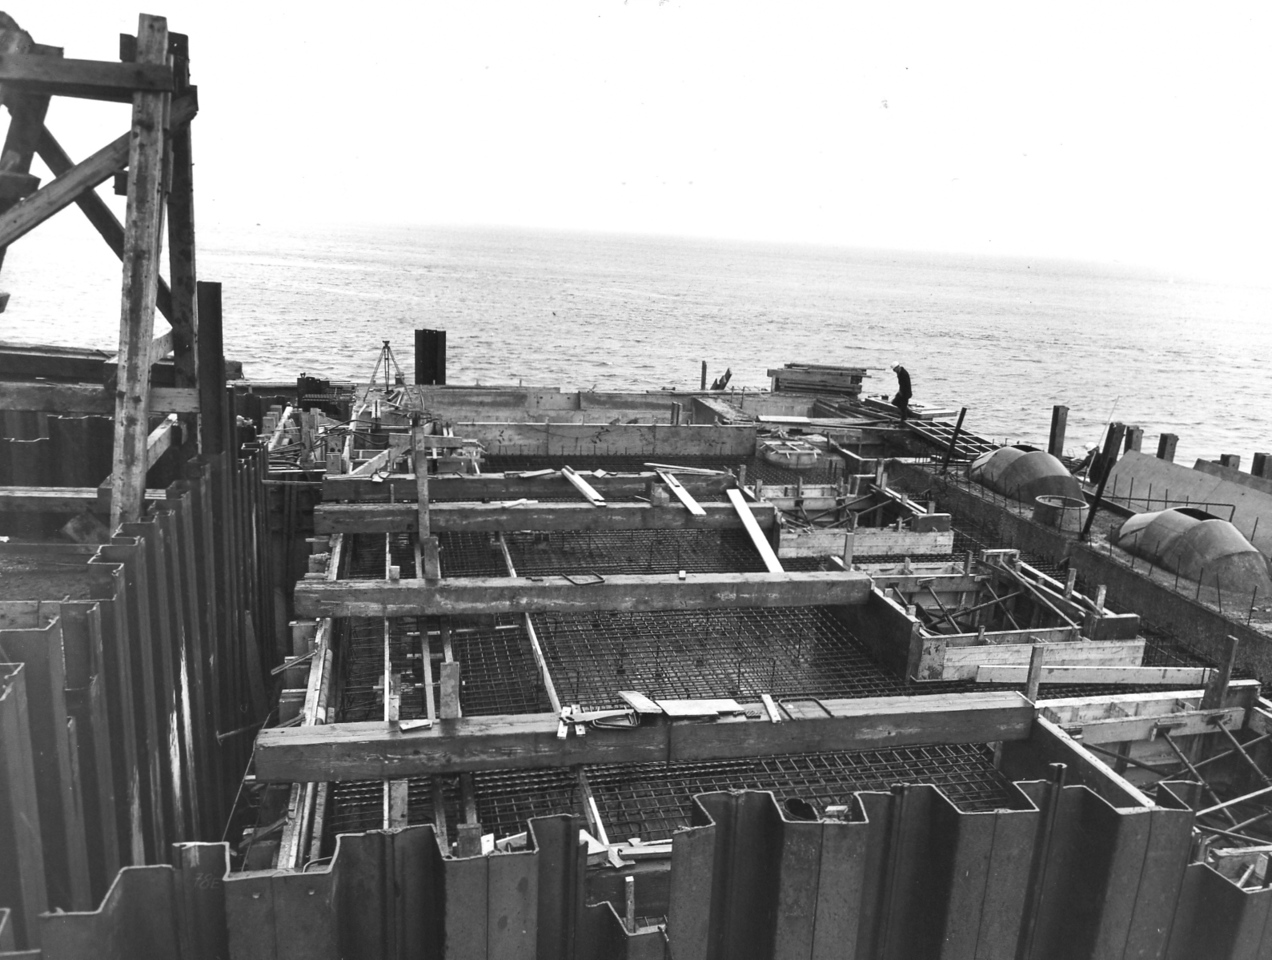 D086	Entrance works - preparing shuttering, etc. for pumphouse roof   29/4/1963